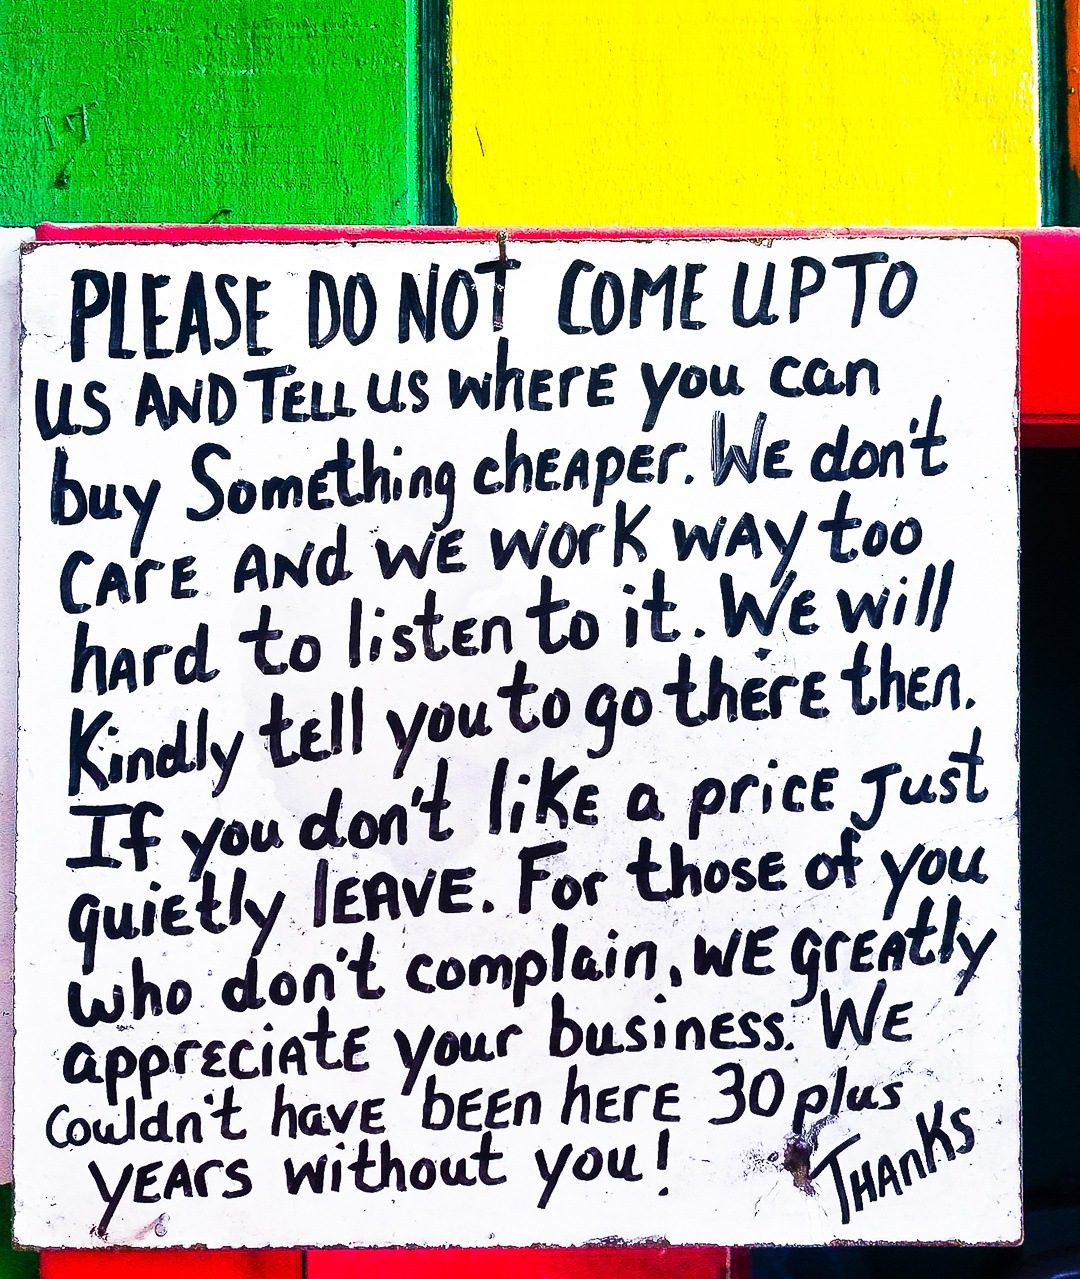 """""""If you don't like a price, just quietly leave."""" Fresh!"""